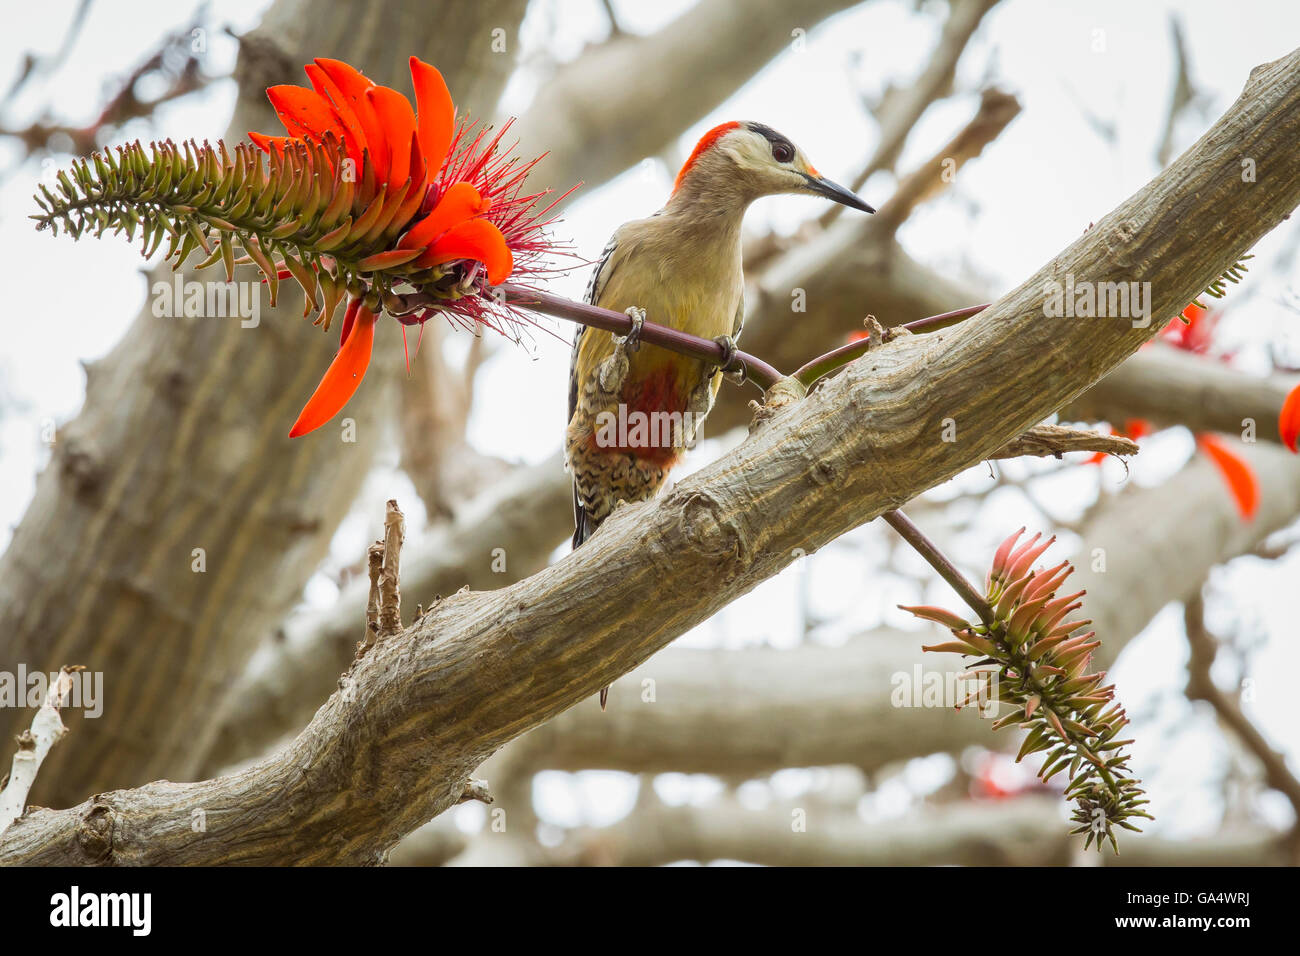 West Indian Woodpecker on a branch of Pinon Florida Erythrina at Hacienda La Belen, a ranch and bird reserve near - Stock Image